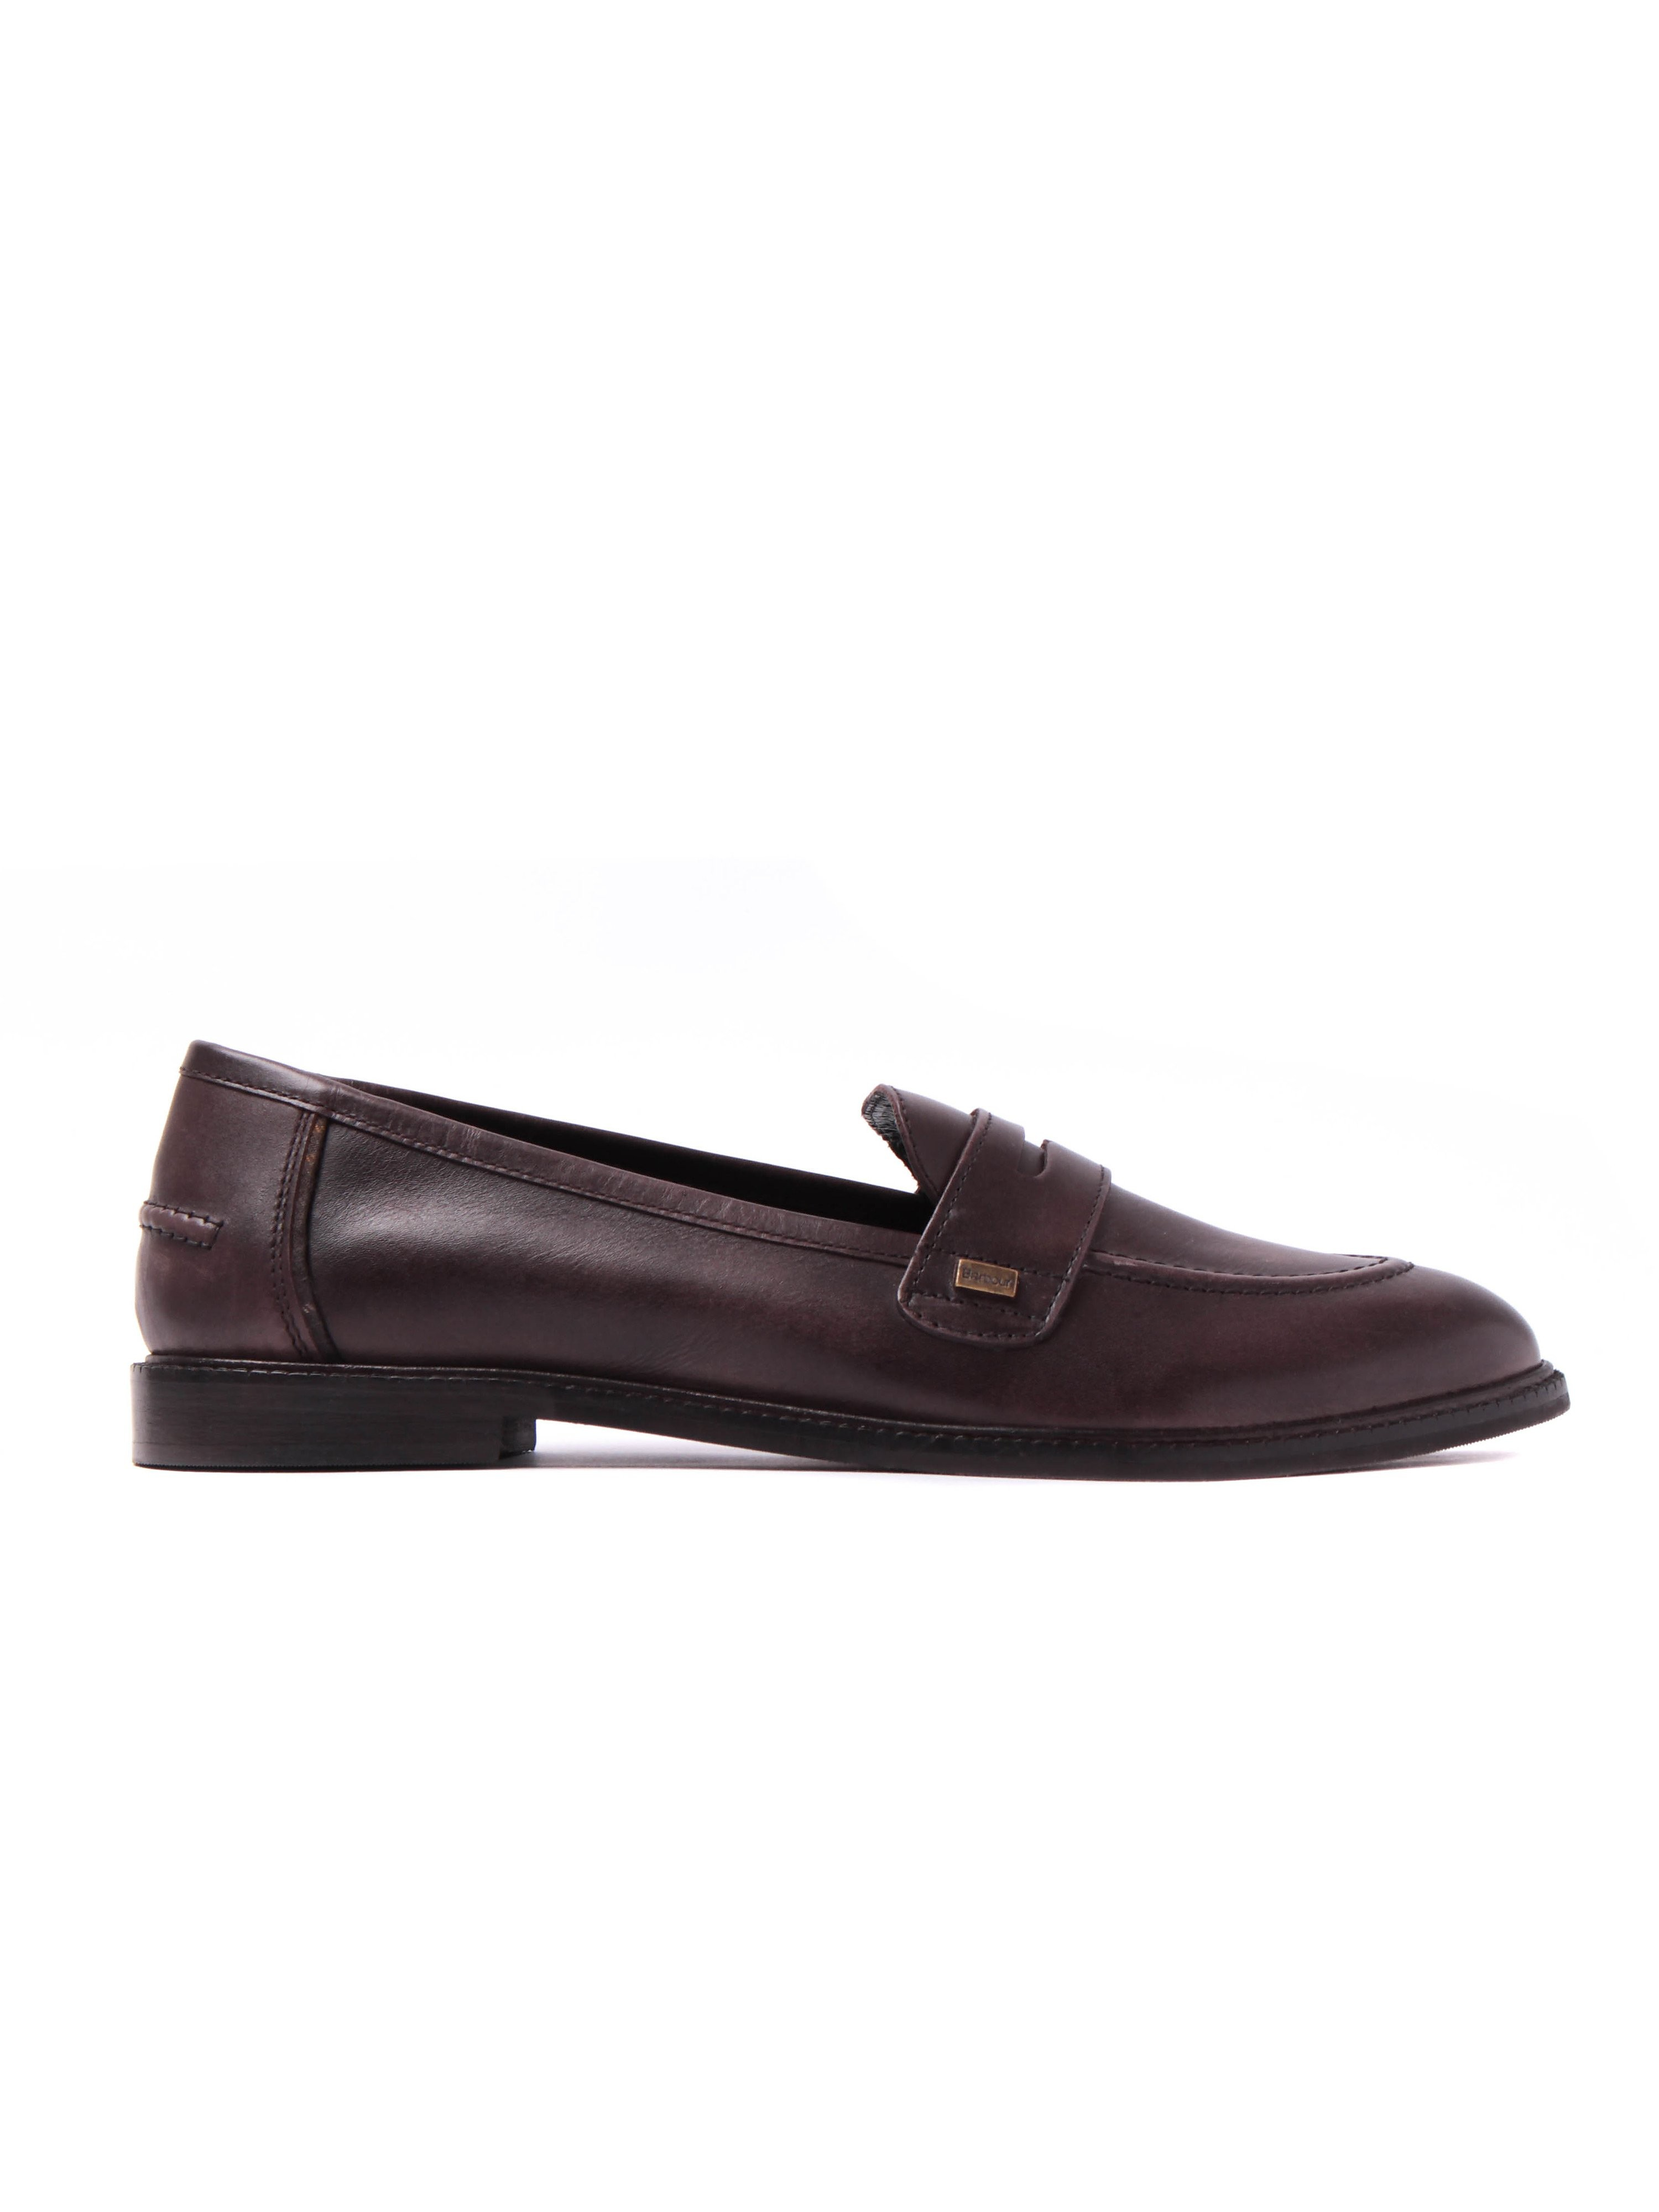 Barbour Women's Elaina Soft Leather Penny Loafers - Brown